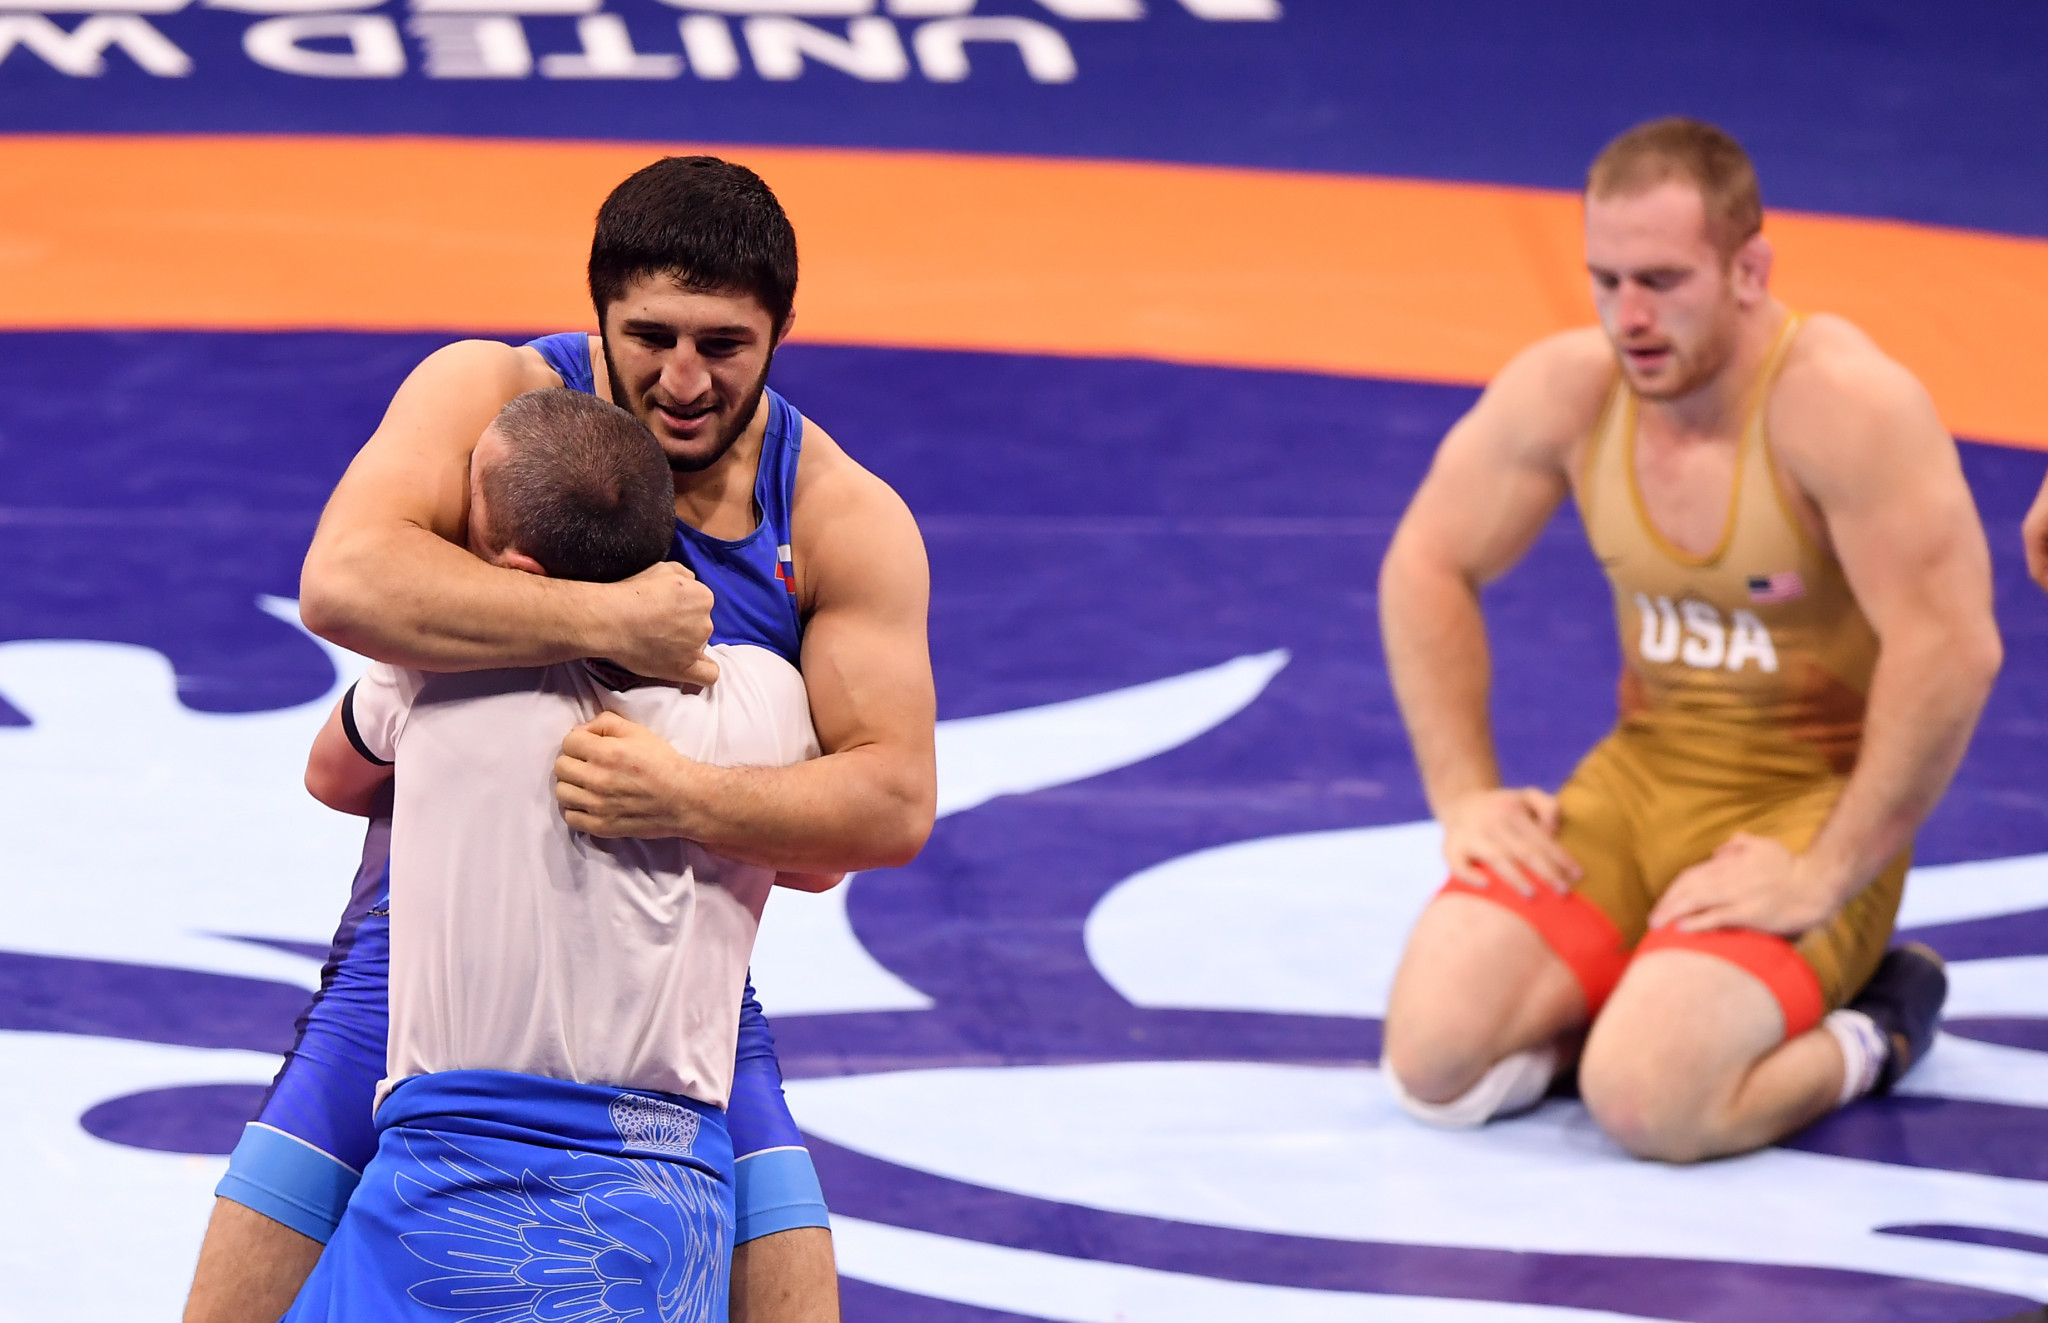 This year's Championships will end with the 97kg freestyle final, won in 2018 by Abdulrashid Sadulaev, left ©Getty Images